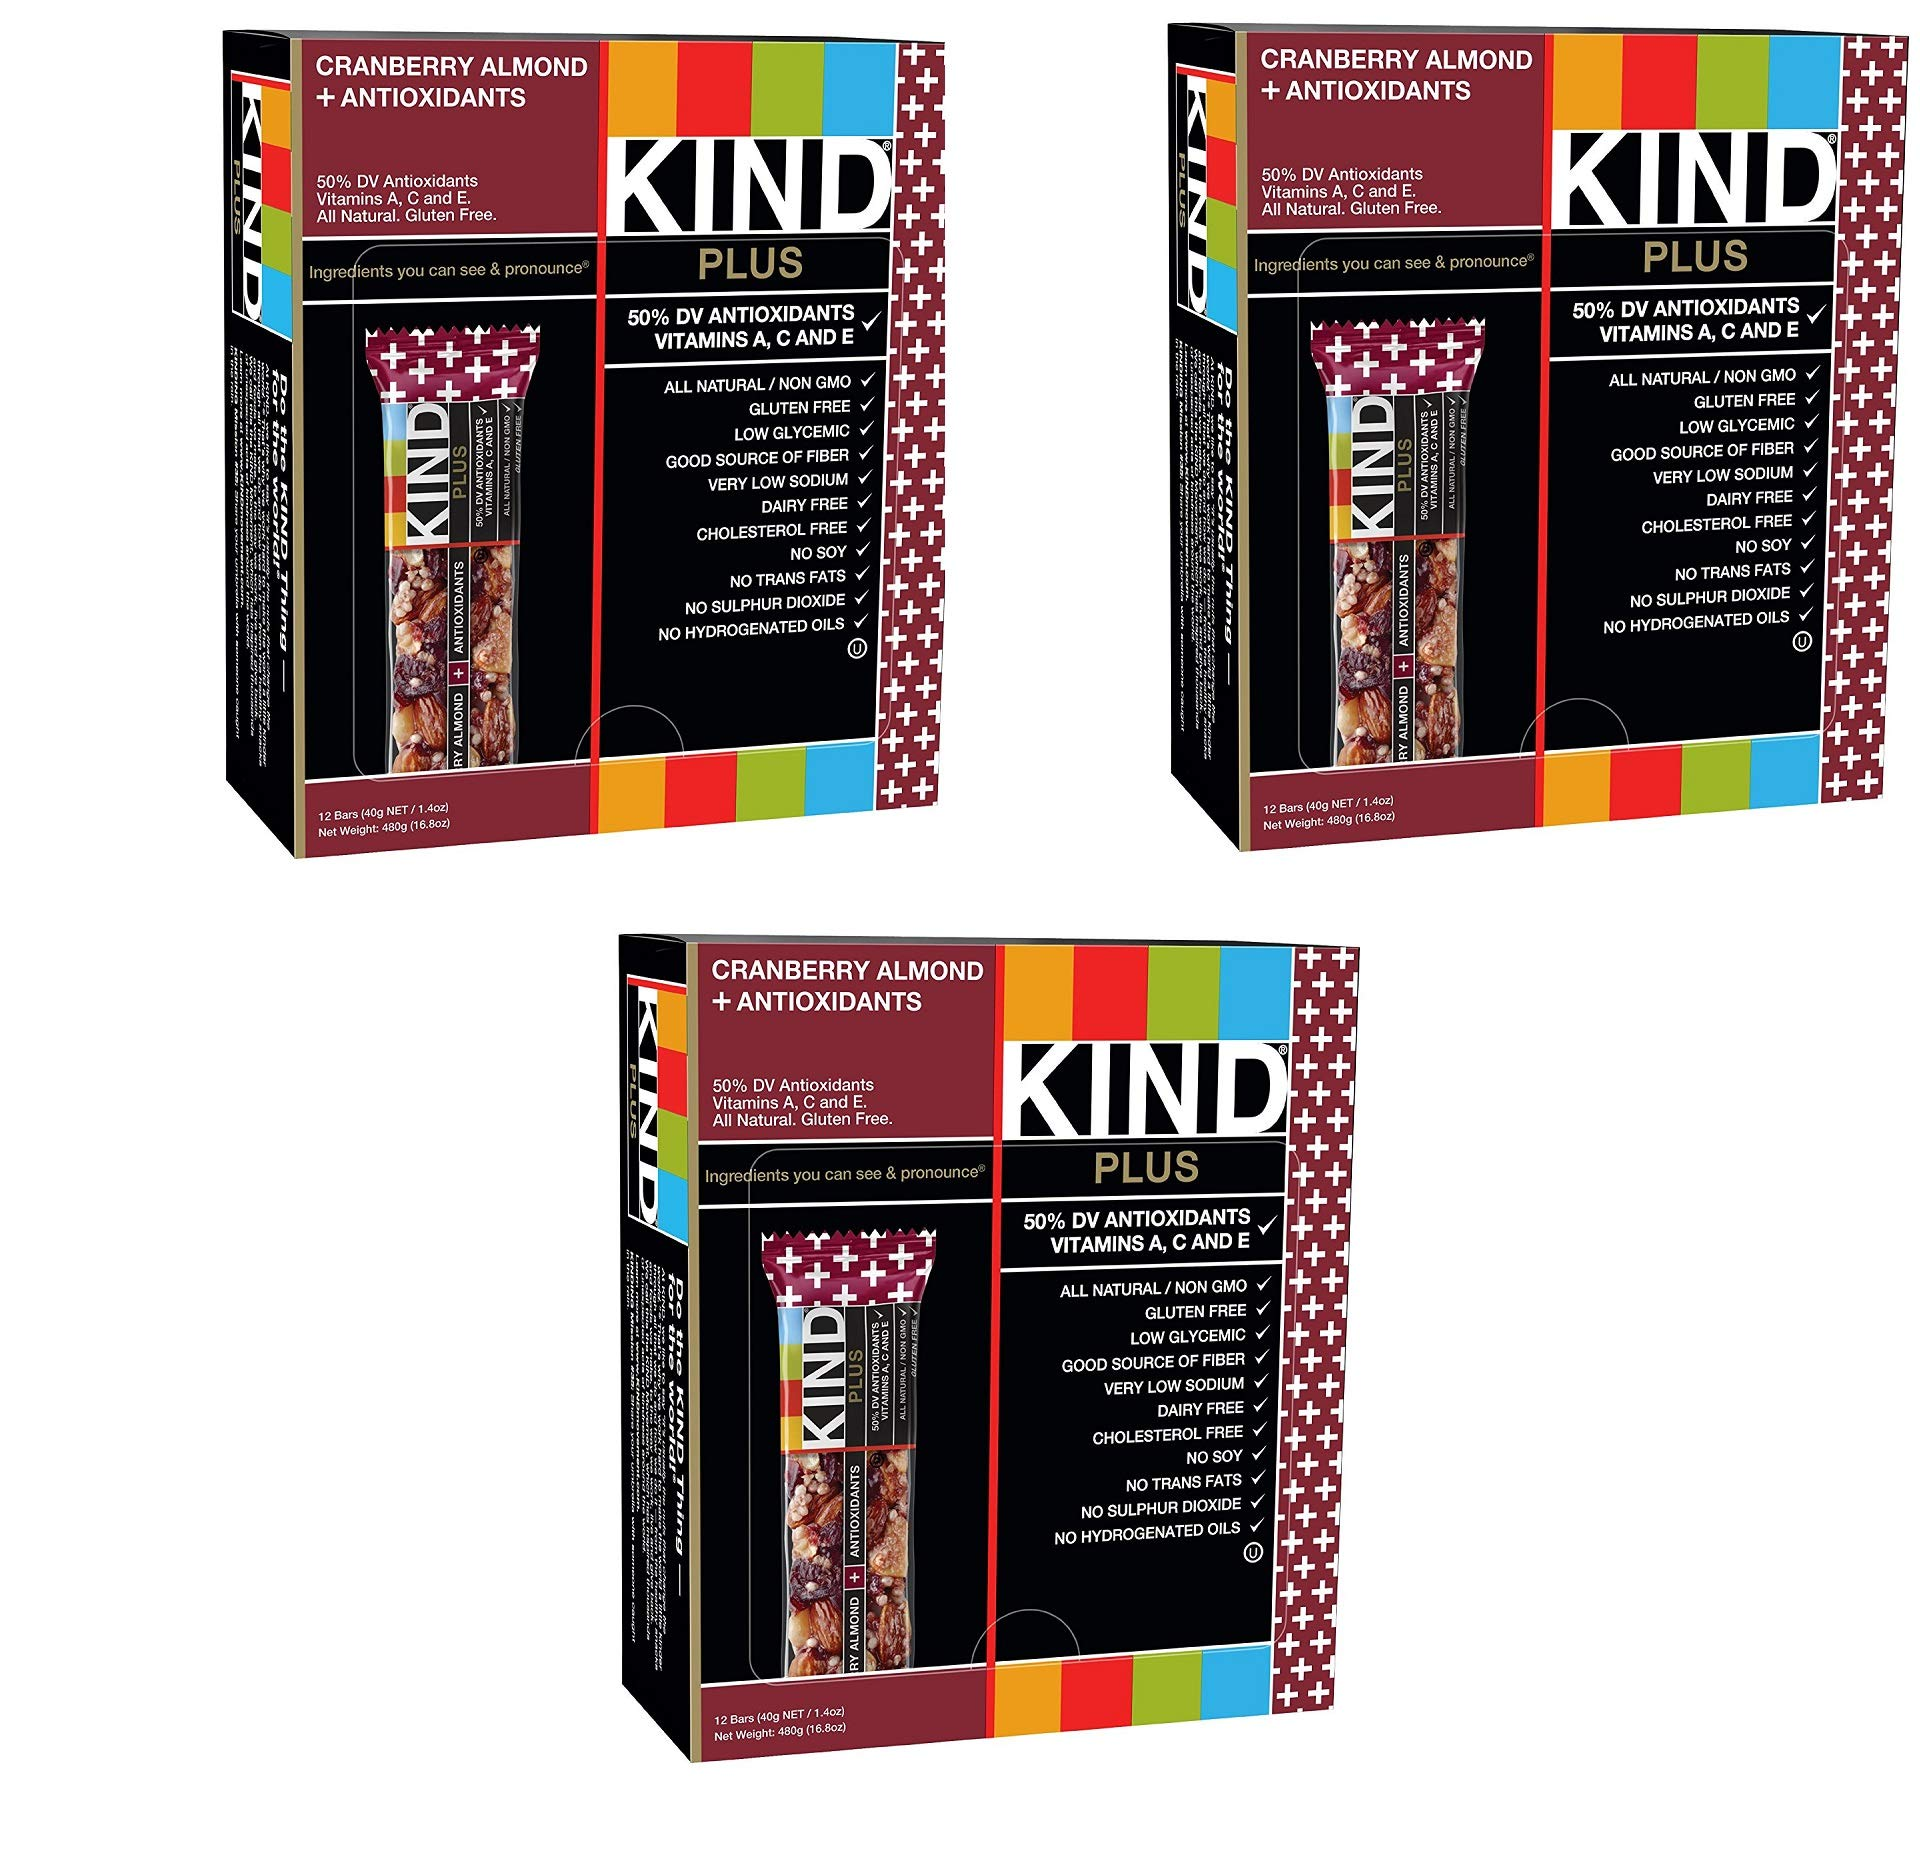 KIND Bars, Cranberry Almond plus Antioxidants with Macadamia Nuts, Gluten Free, Low Sugar, 1.4oz, 36 Bars